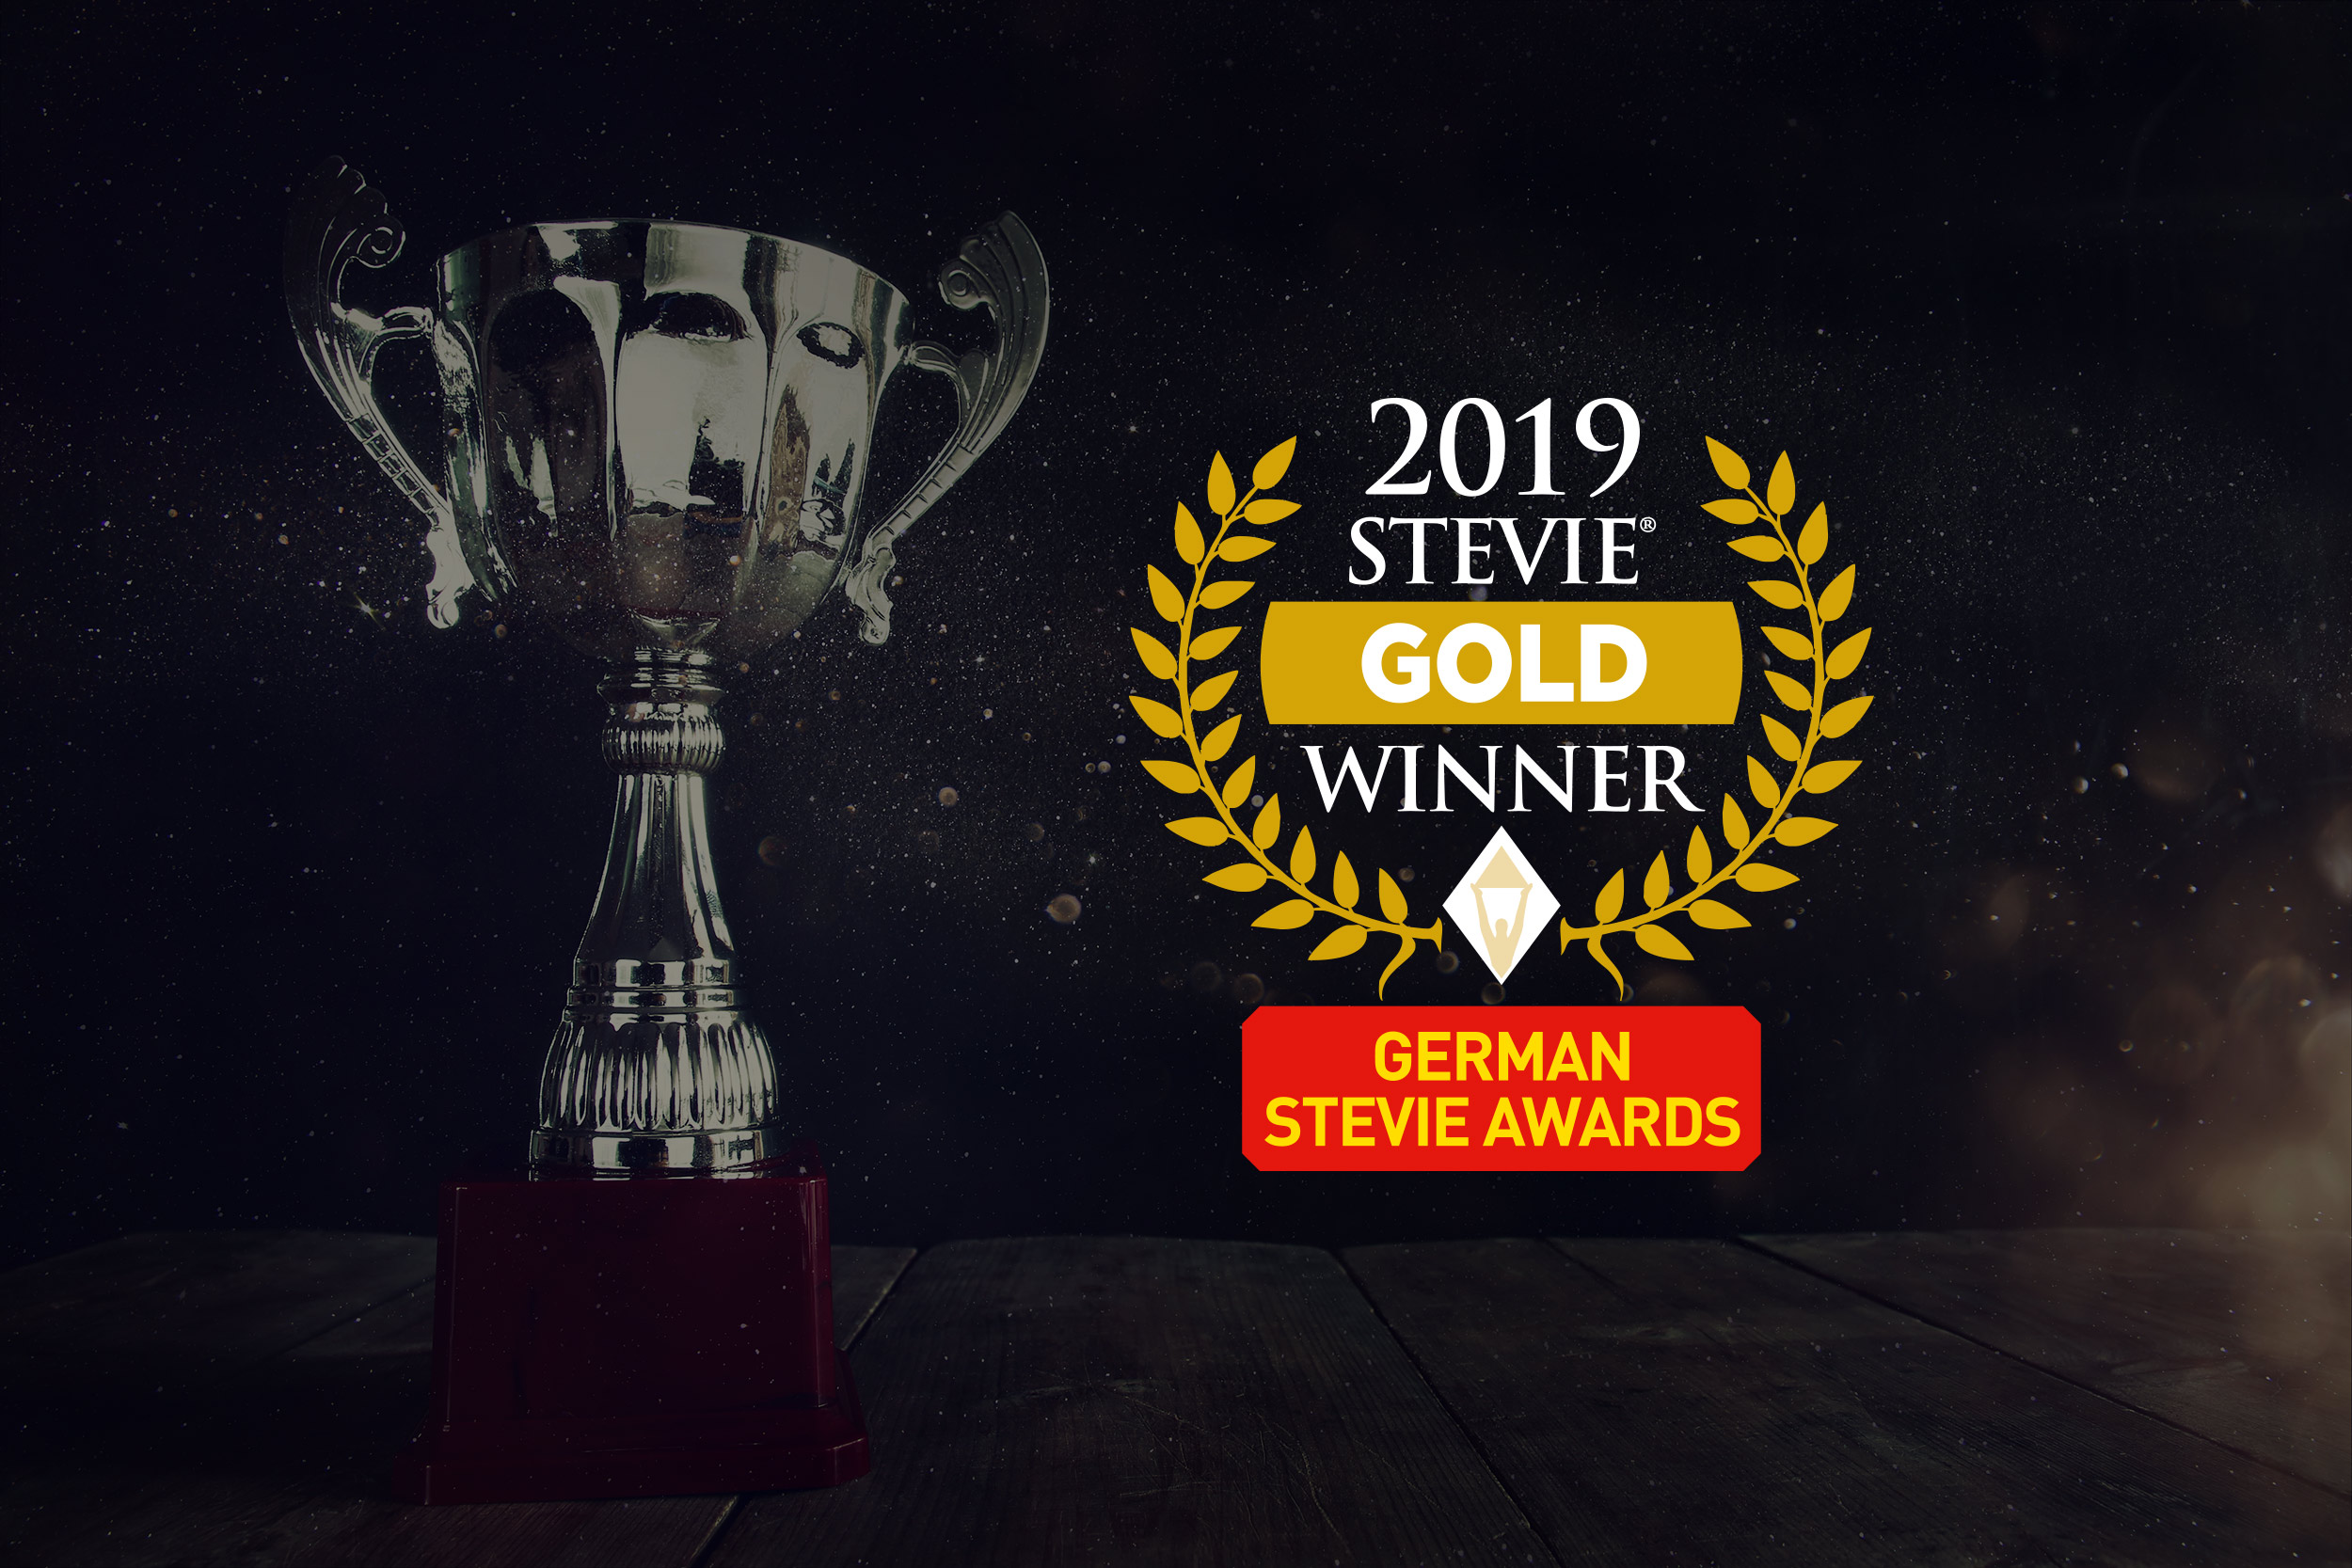 DRACOON receives two Stevie Awards